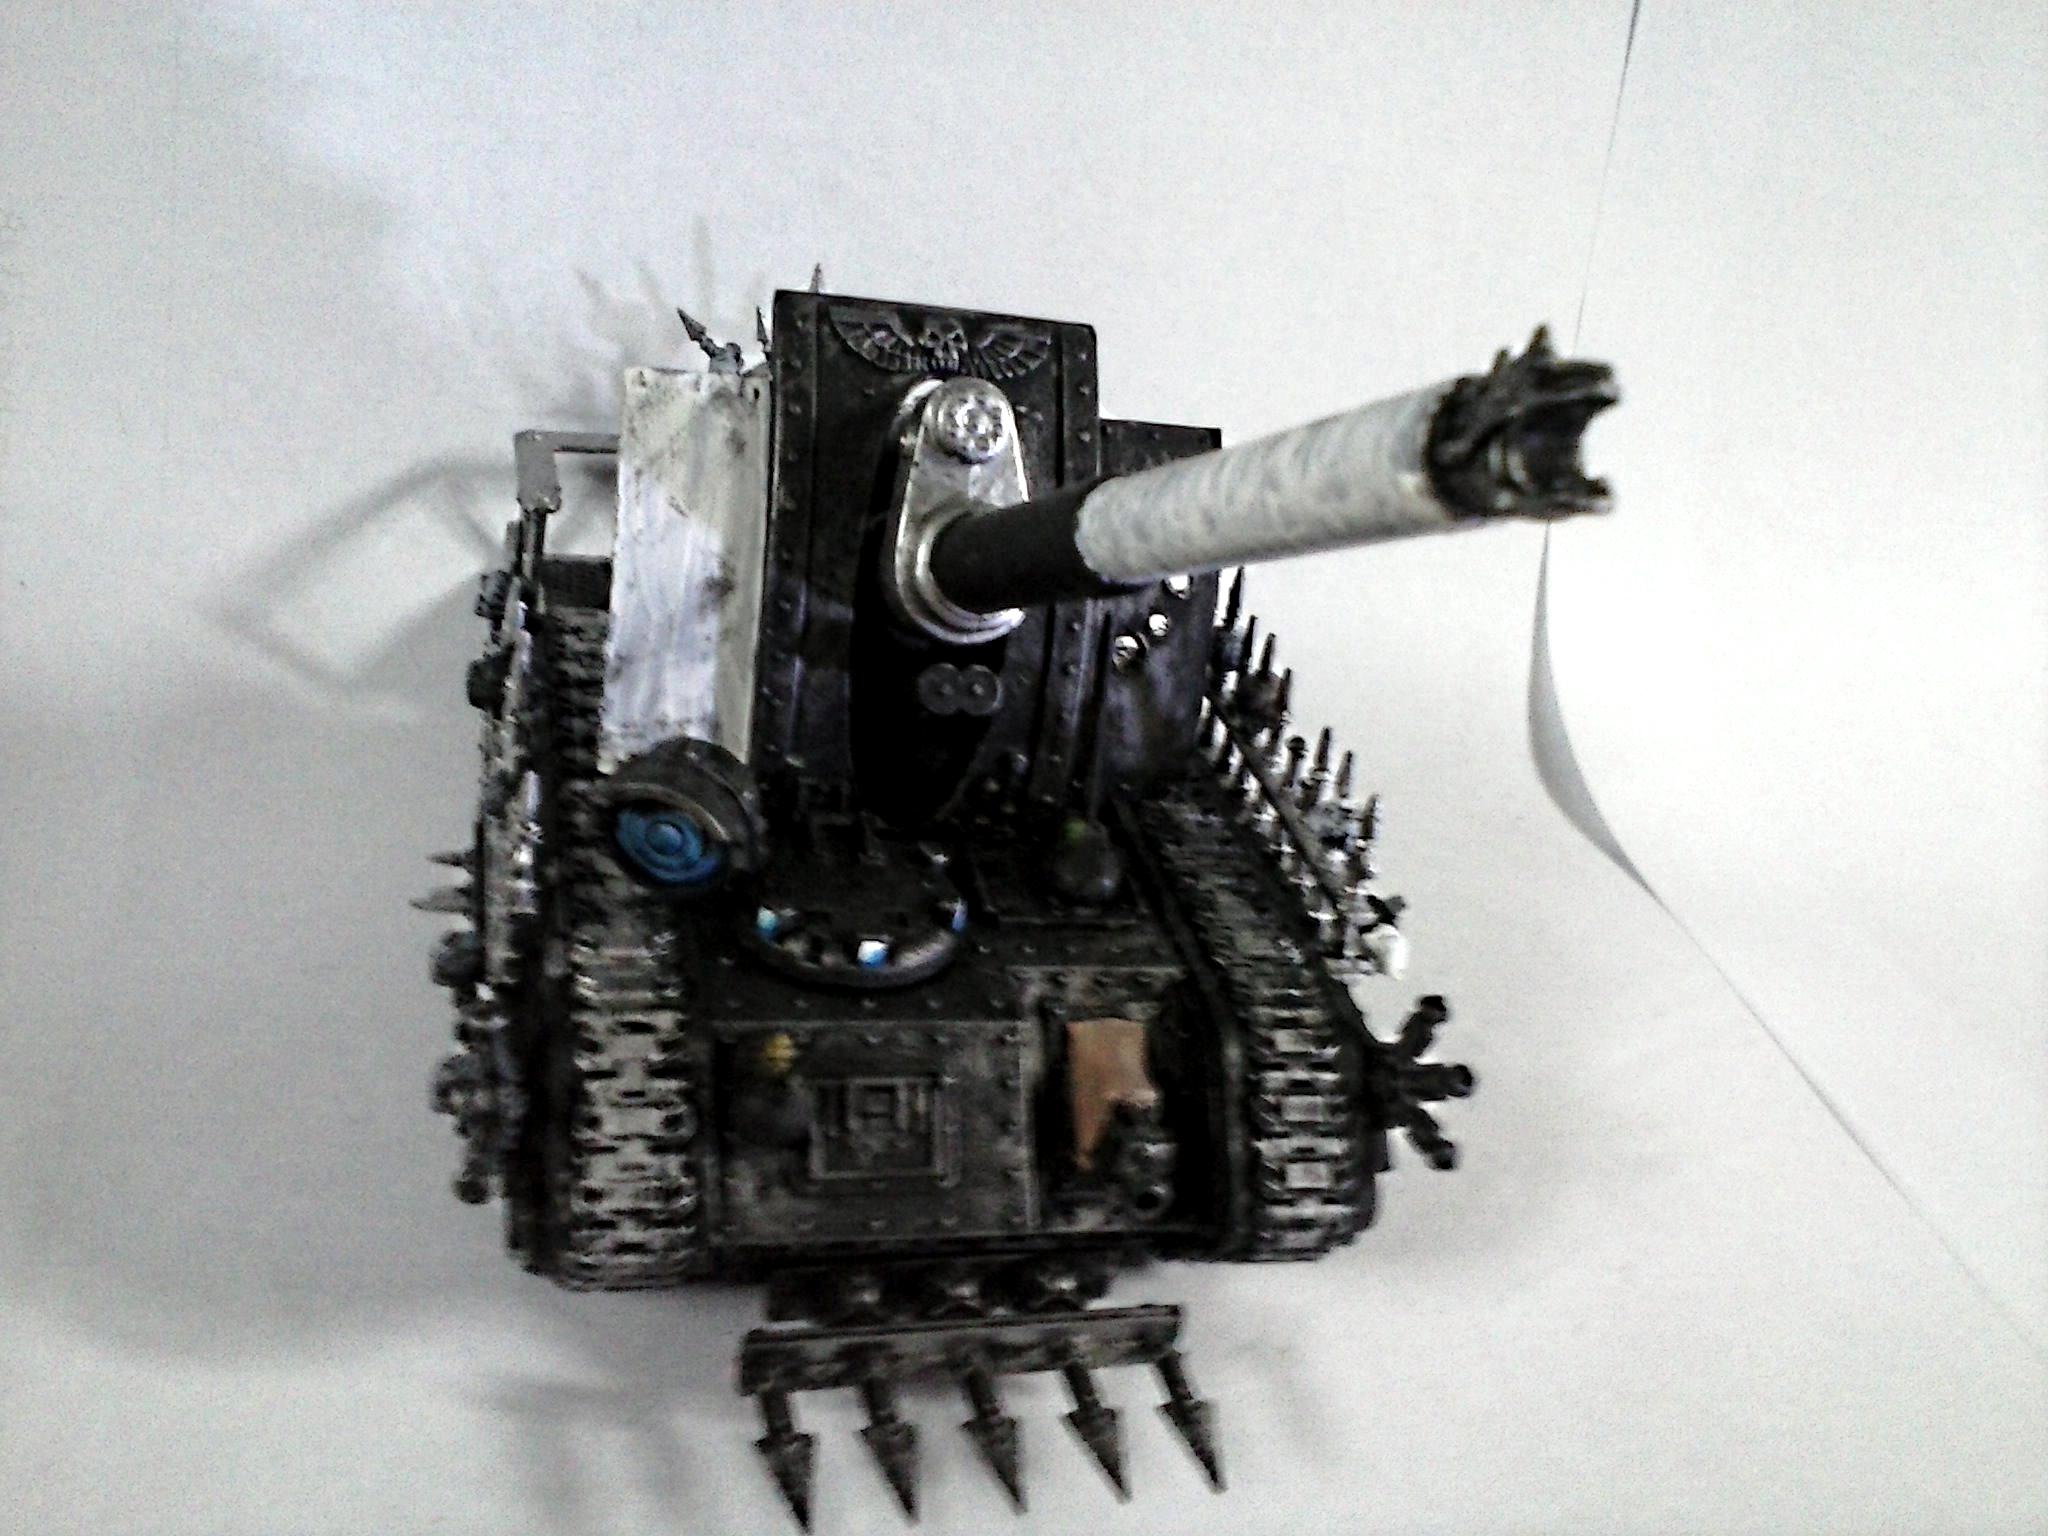 Artillery, Basilisk, Black, Chaos, Conversion, Earthshaker, Heavy Bolter, Looted, Silver, Spiky, Talons, Tank, Warband, Weathered